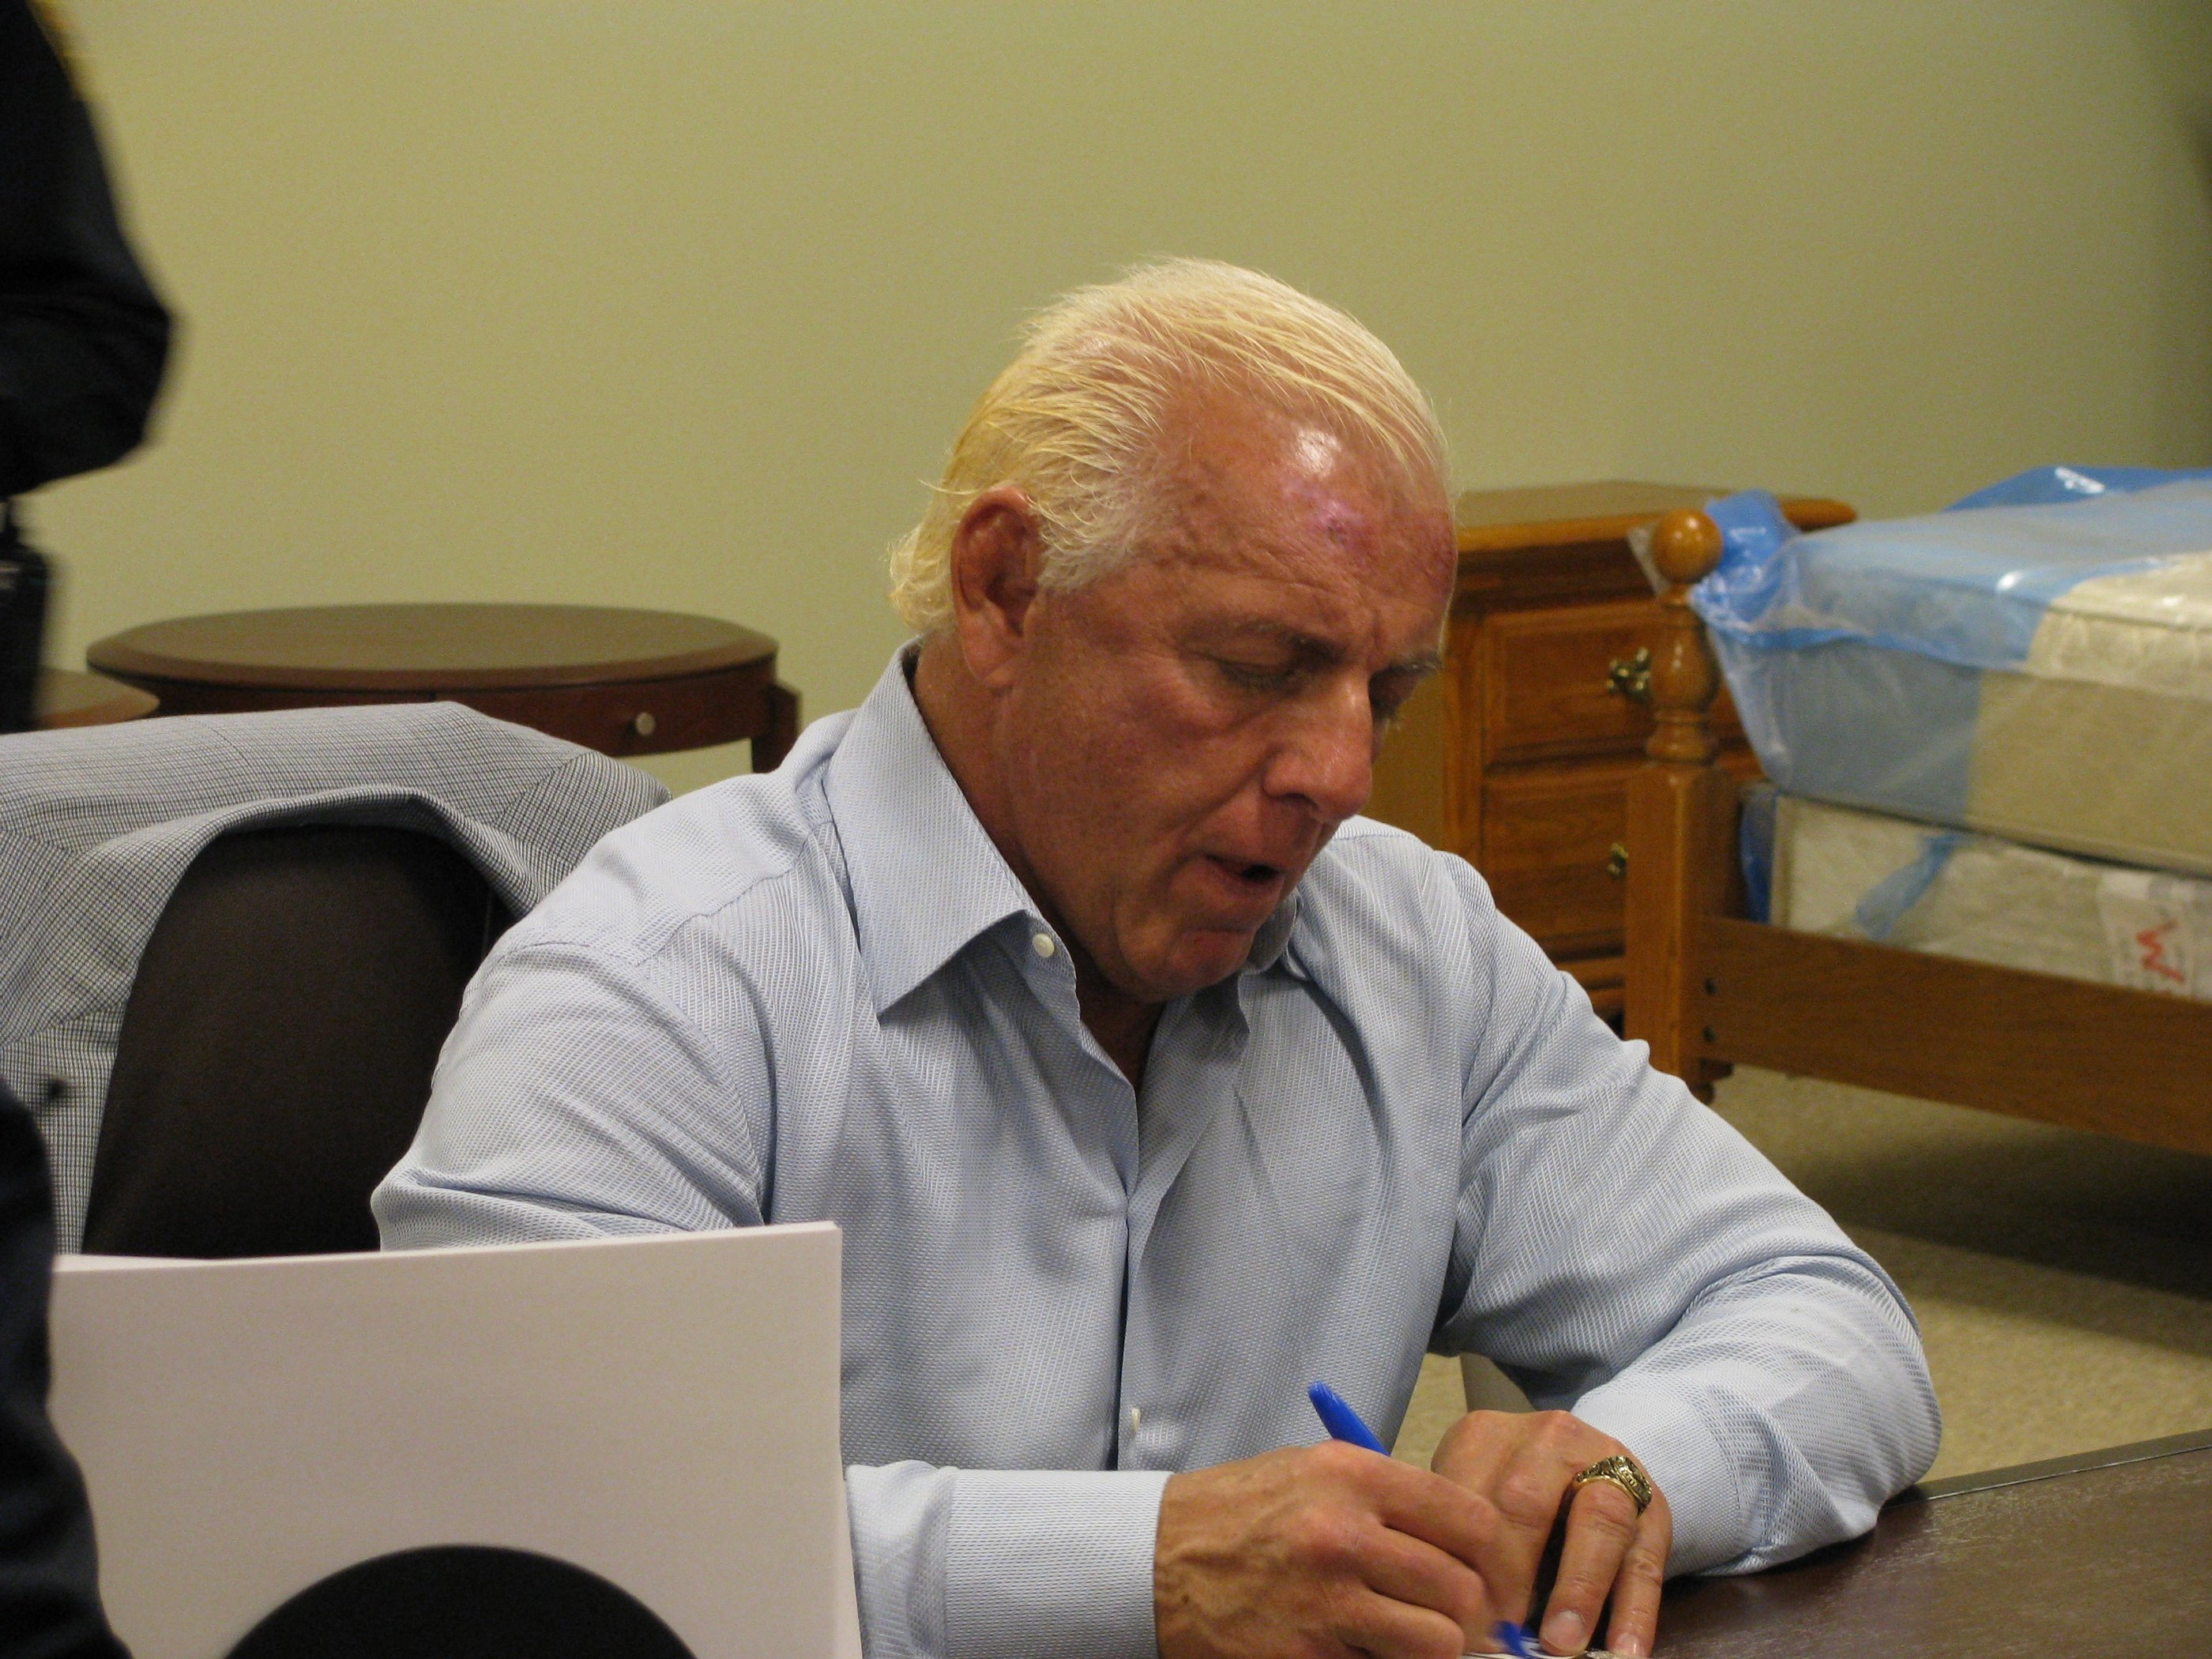 Ric Flair is signing a lot of autographs these days